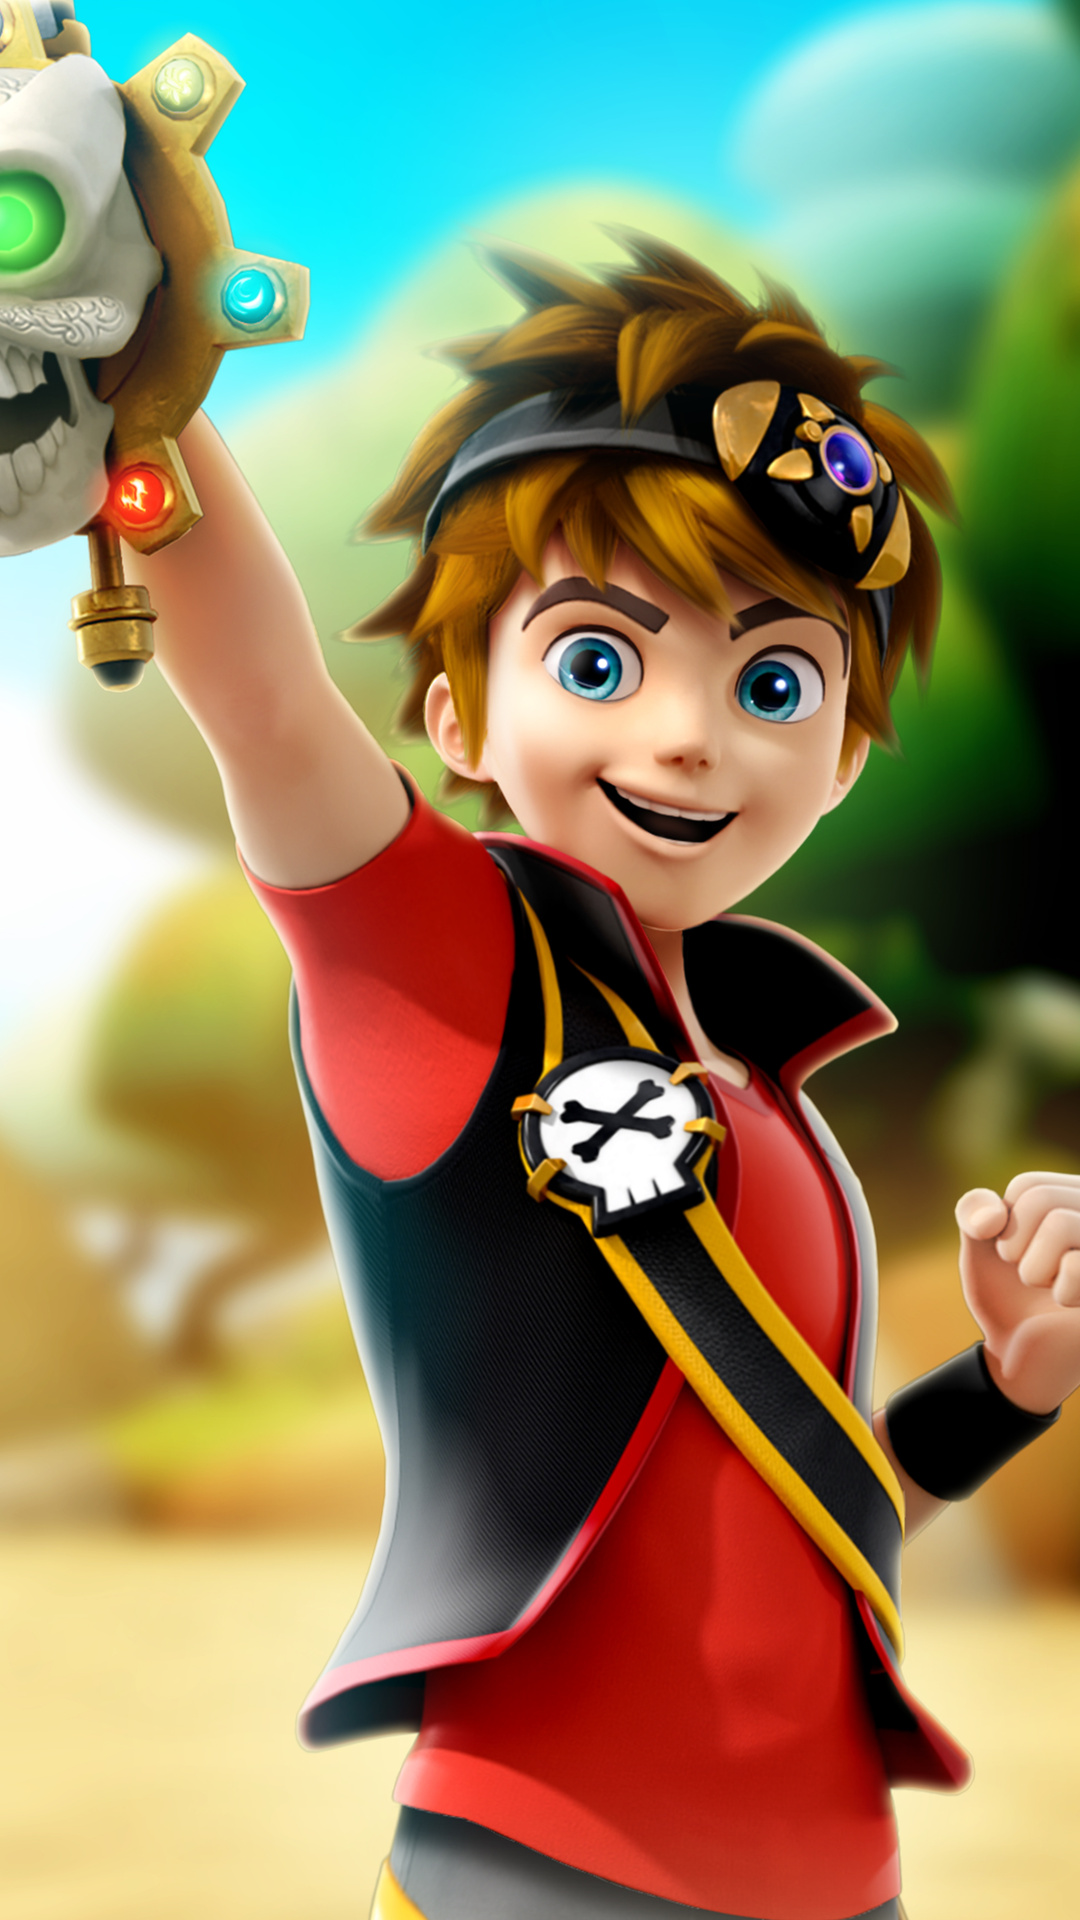 1080x1920 Zak Storm Iphone 7 6s 6 Plus Pixel Xl One Plus 3 3t 5 Hd 4k Wallpapers Images Backgrounds Photos And Pictures